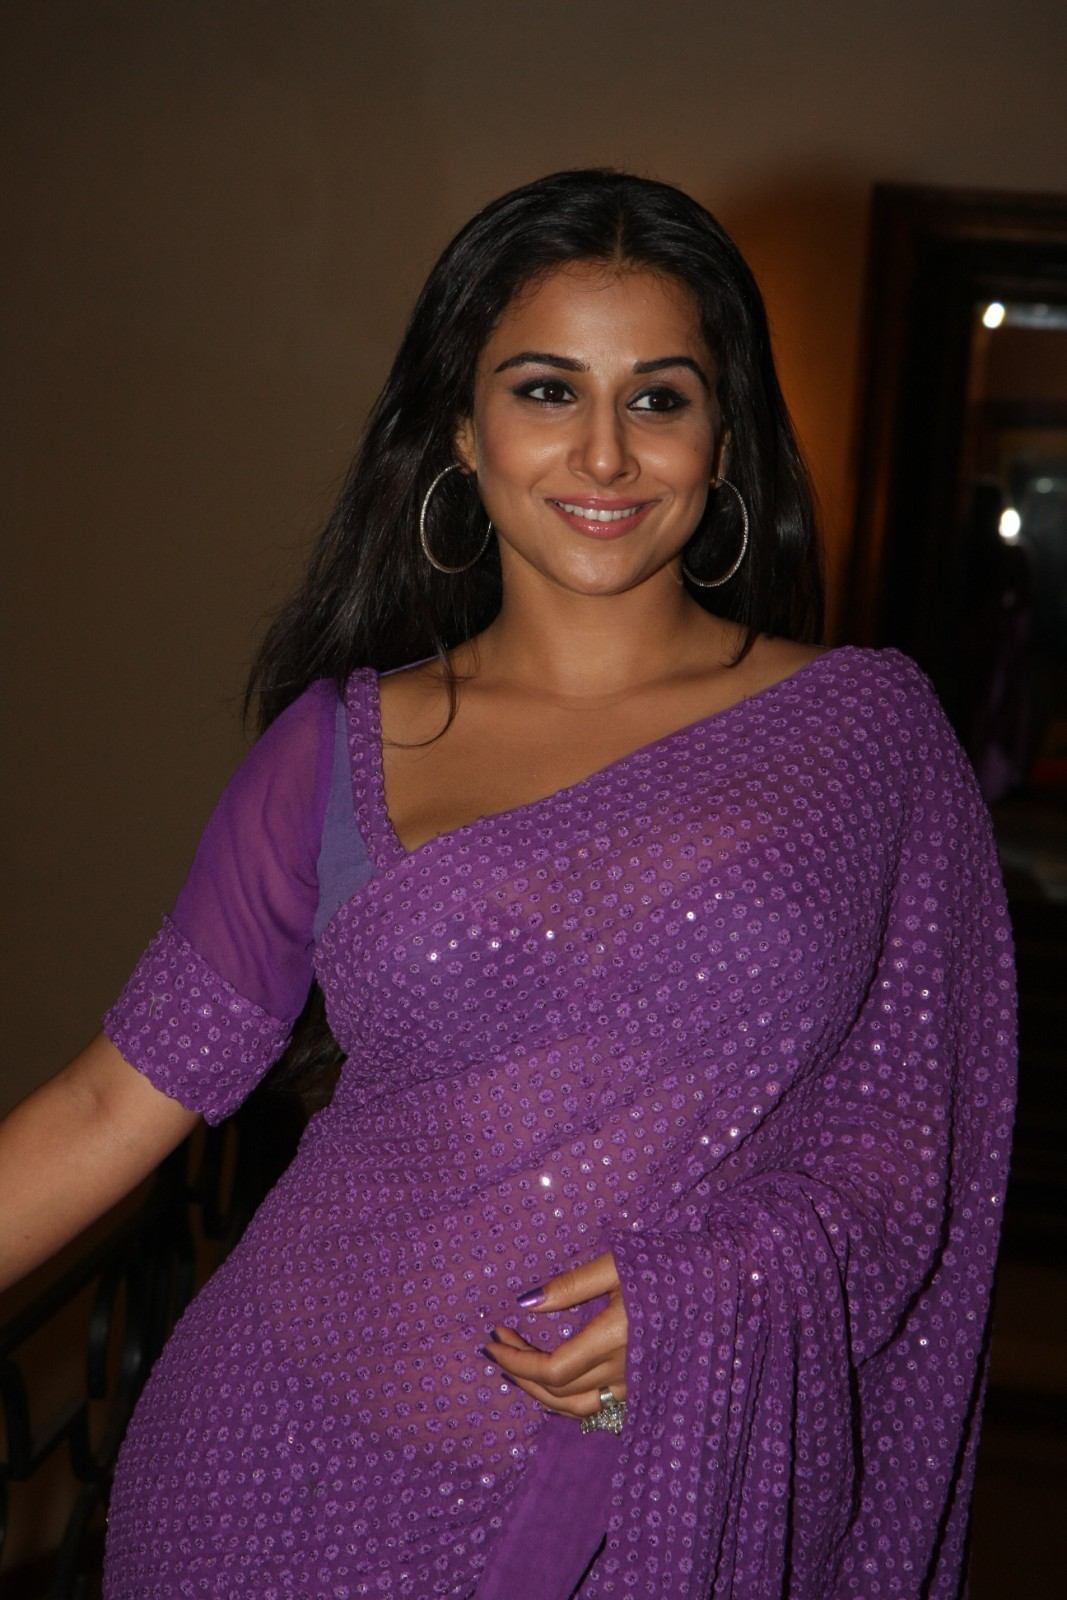 High Quality Bollywood Celebrity Pictures Vidya Balan -3171